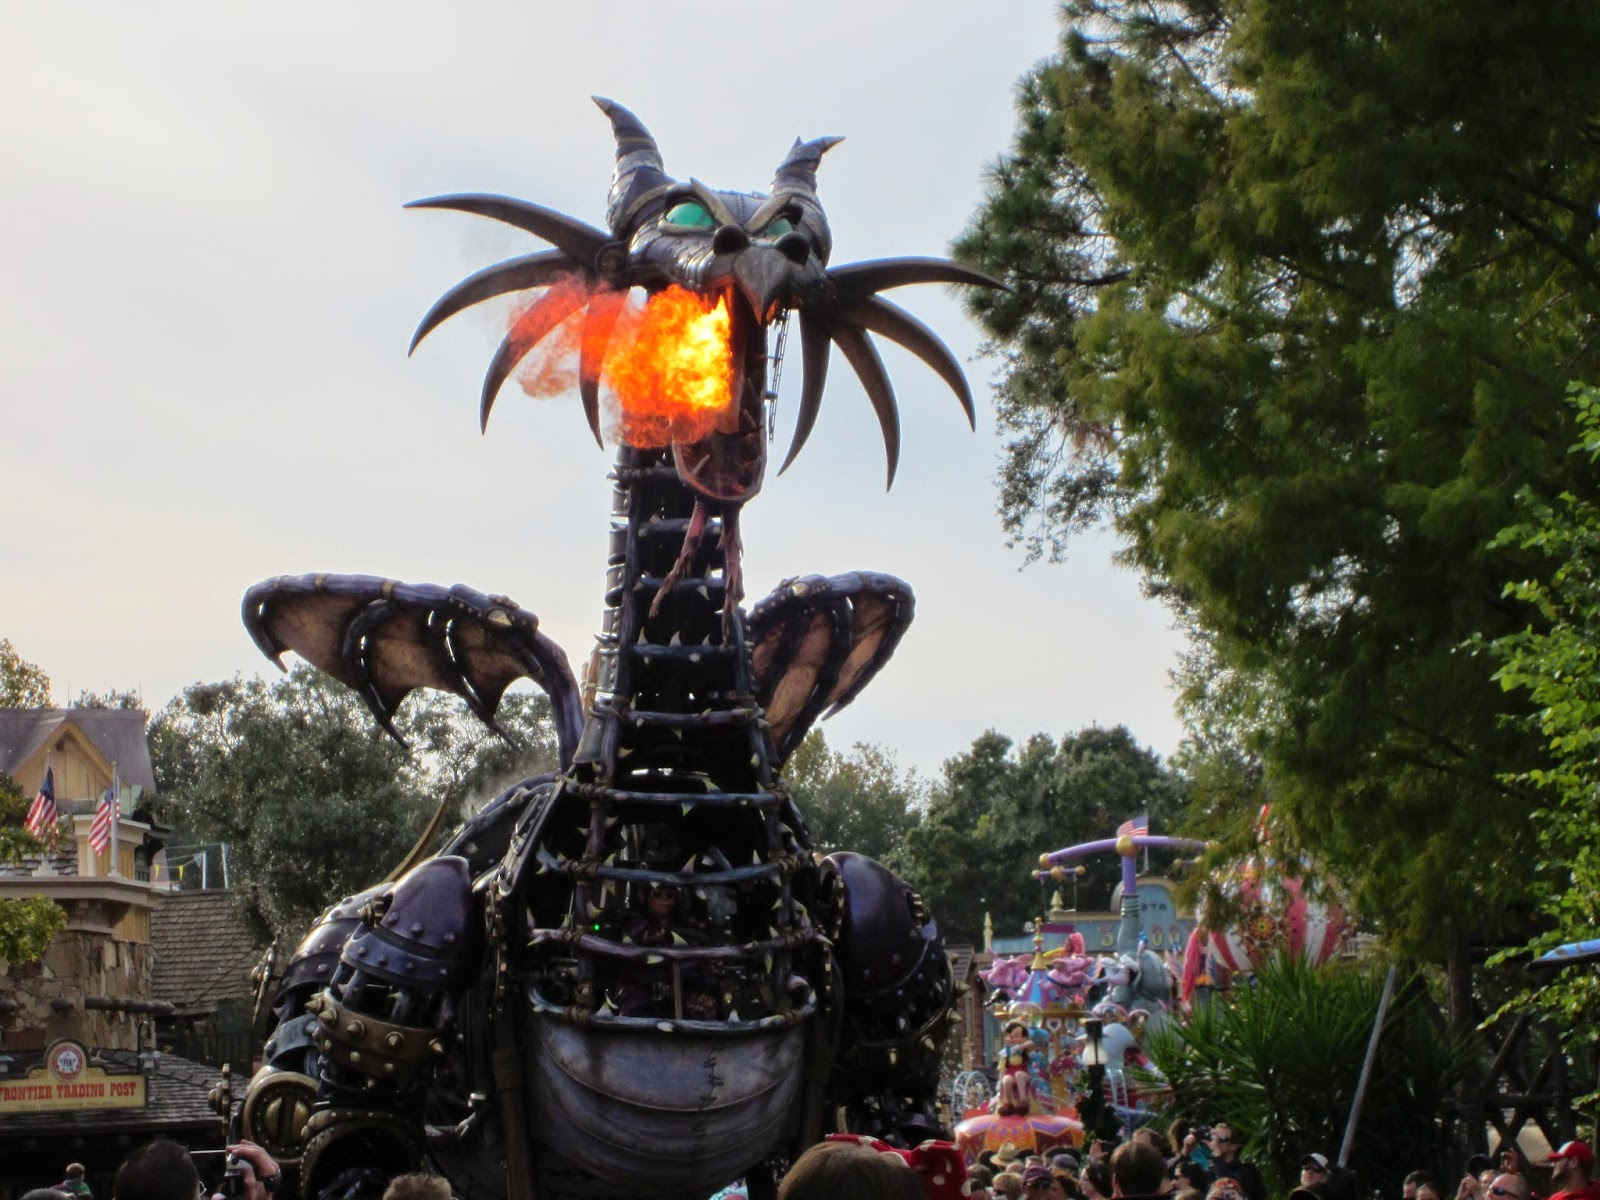 Jack Skellington's Walt Disney World Trip Selfies Maleficent steampunk dragon Festival of Fantasy Parade